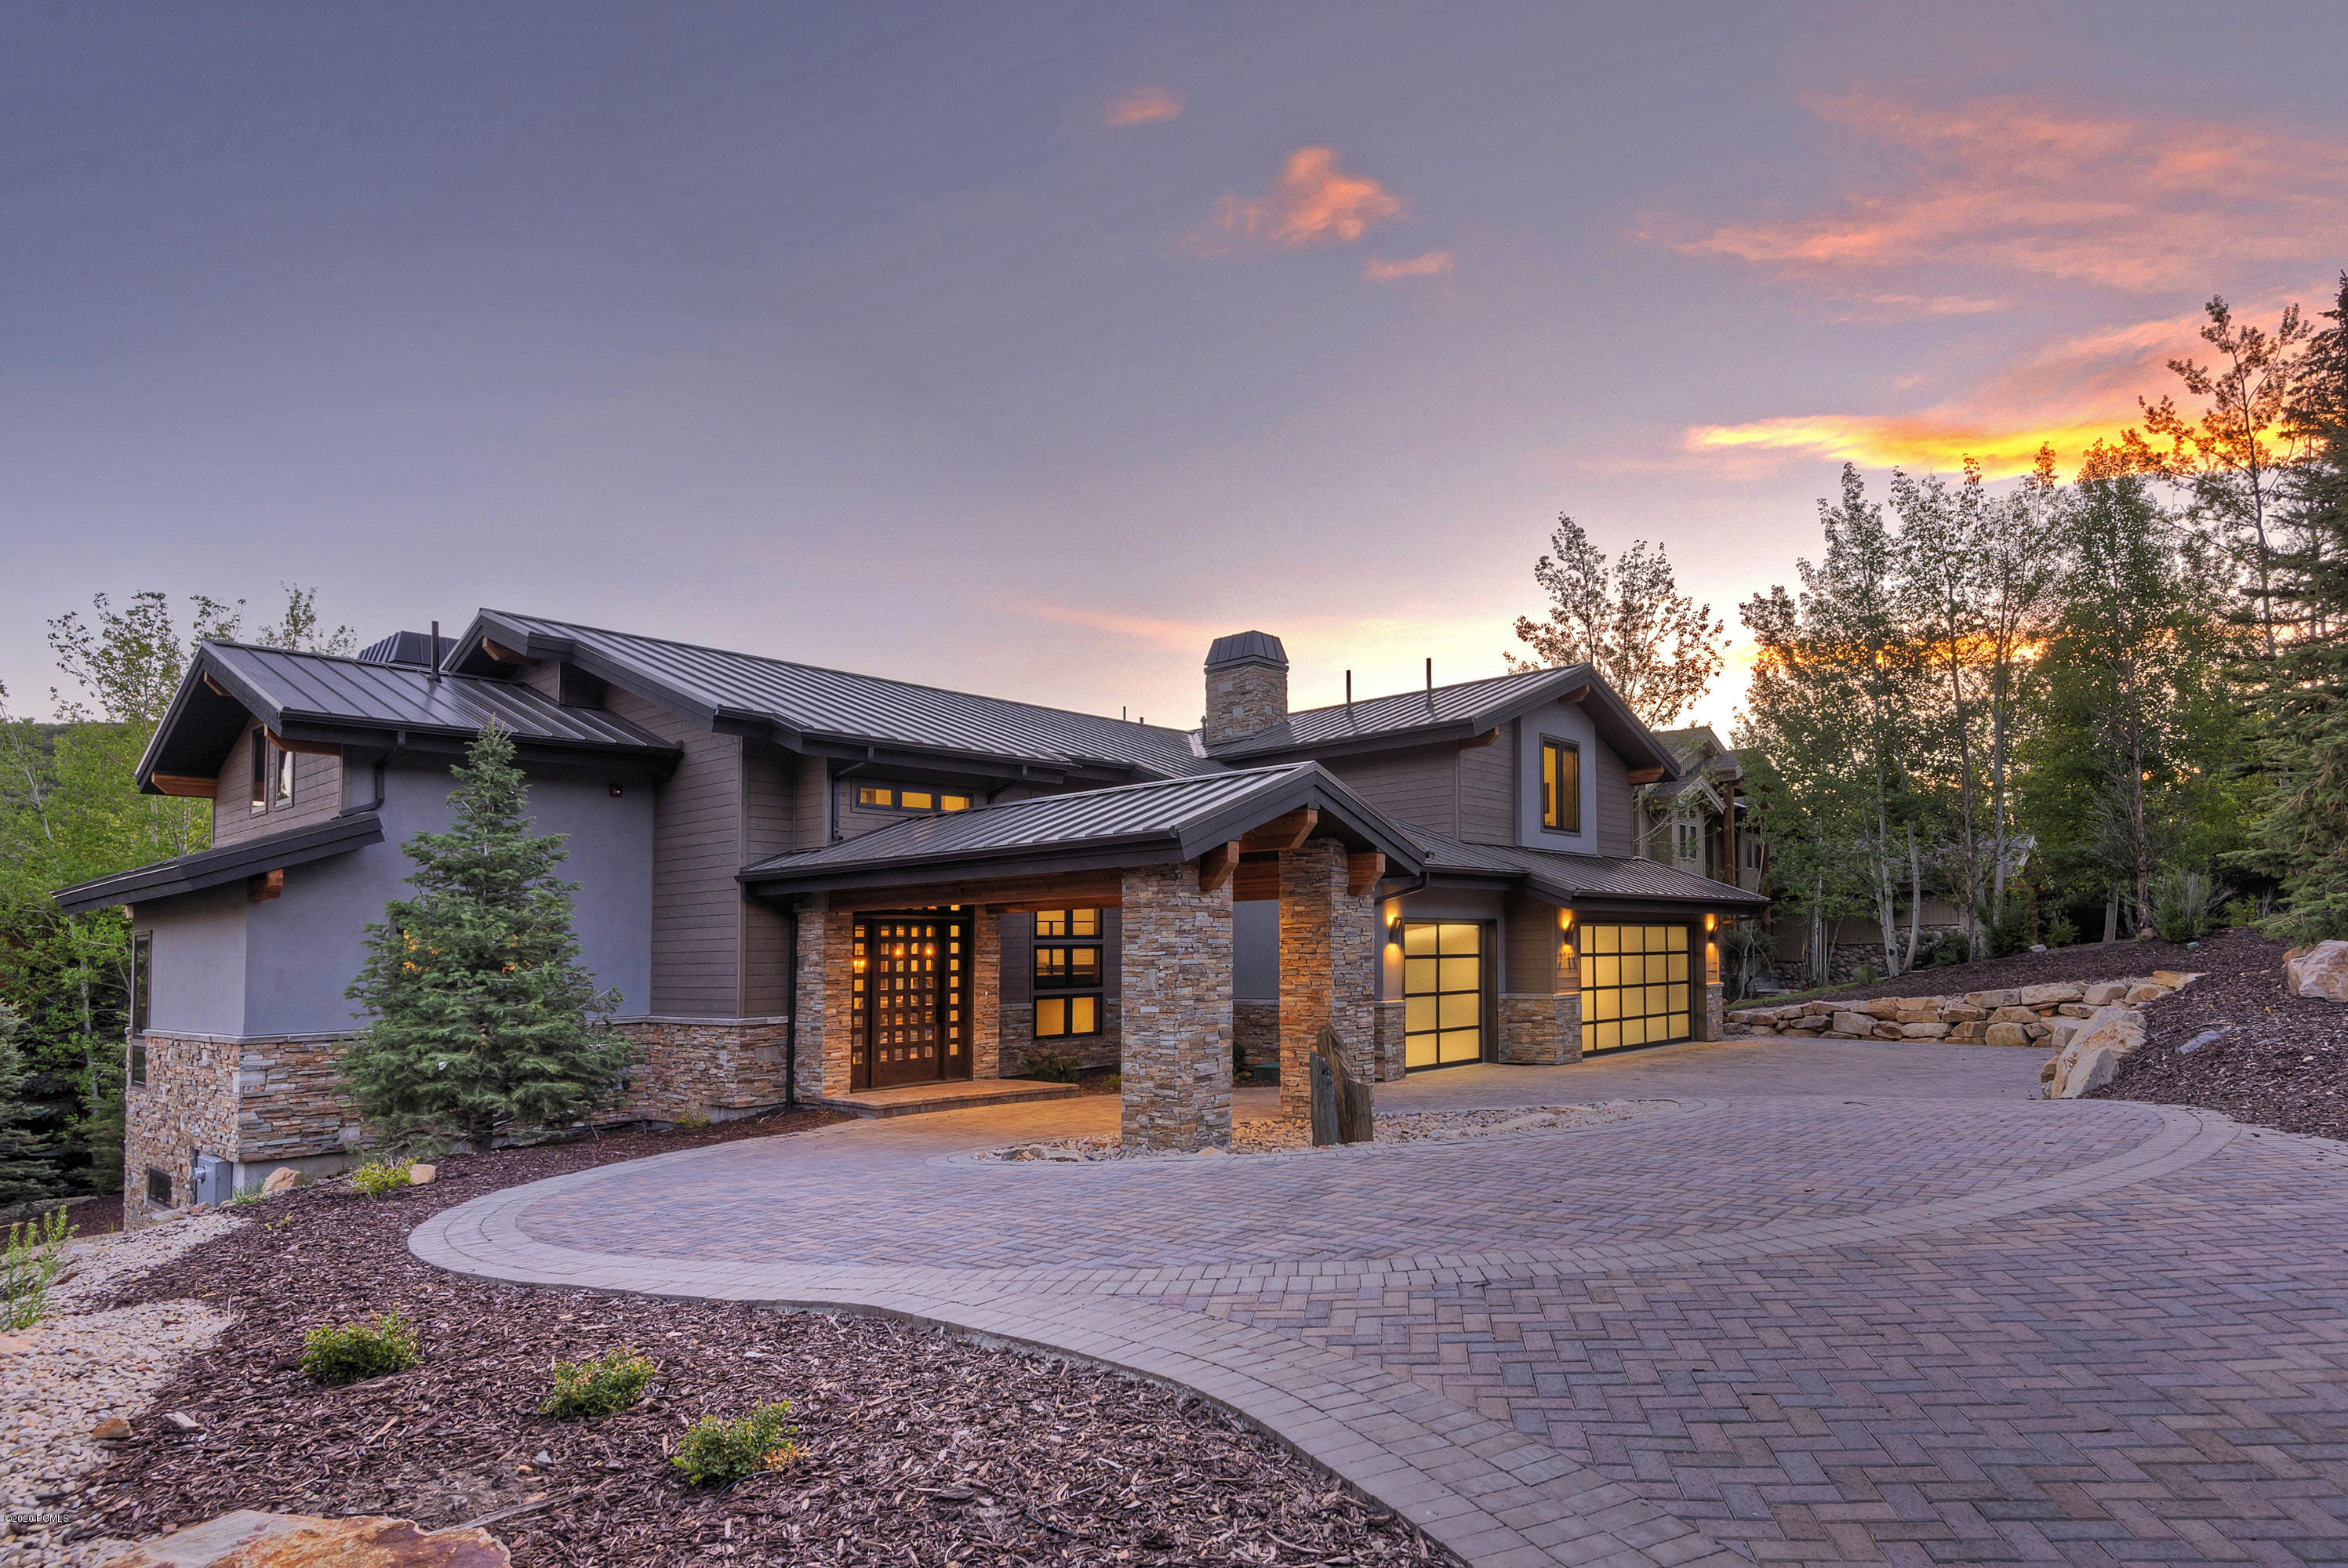 2755 Telemark Drive, Park City, Utah 84060, 5 Bedrooms Bedrooms, ,6 BathroomsBathrooms,Single Family,For Sale,Telemark,20190109112430415765000000